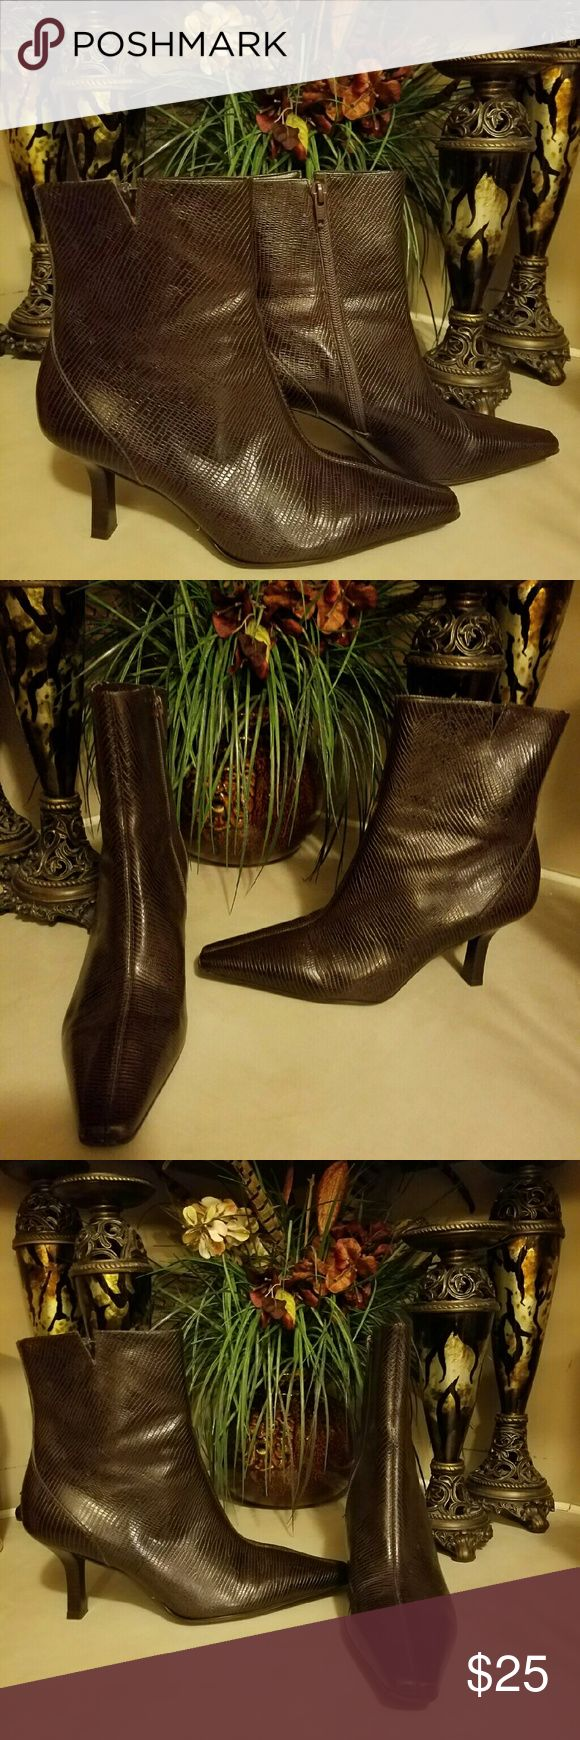 Gianni Bini Boots Gentle used pair of Gianni Bini Boots still in good condition Gianni Bini Shoes Heeled Boots